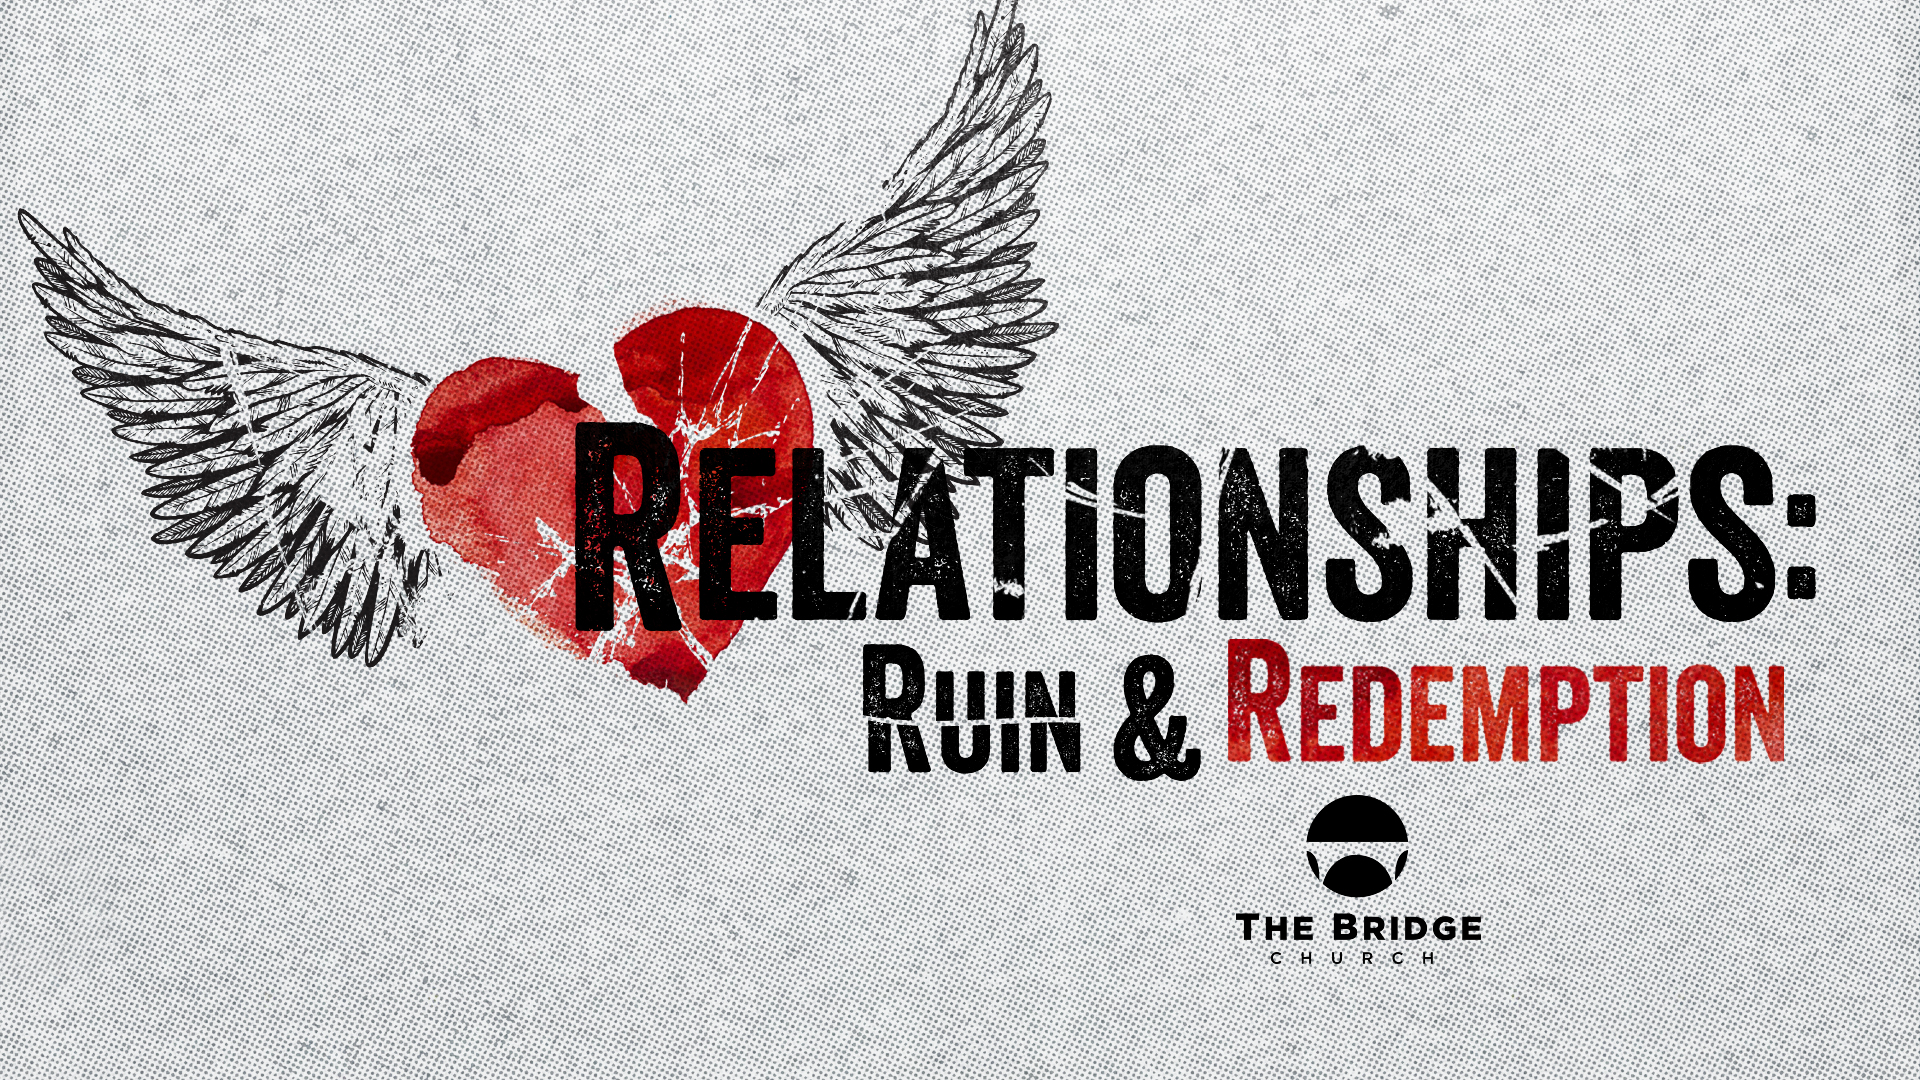 Relationships: Ruin & Redemption